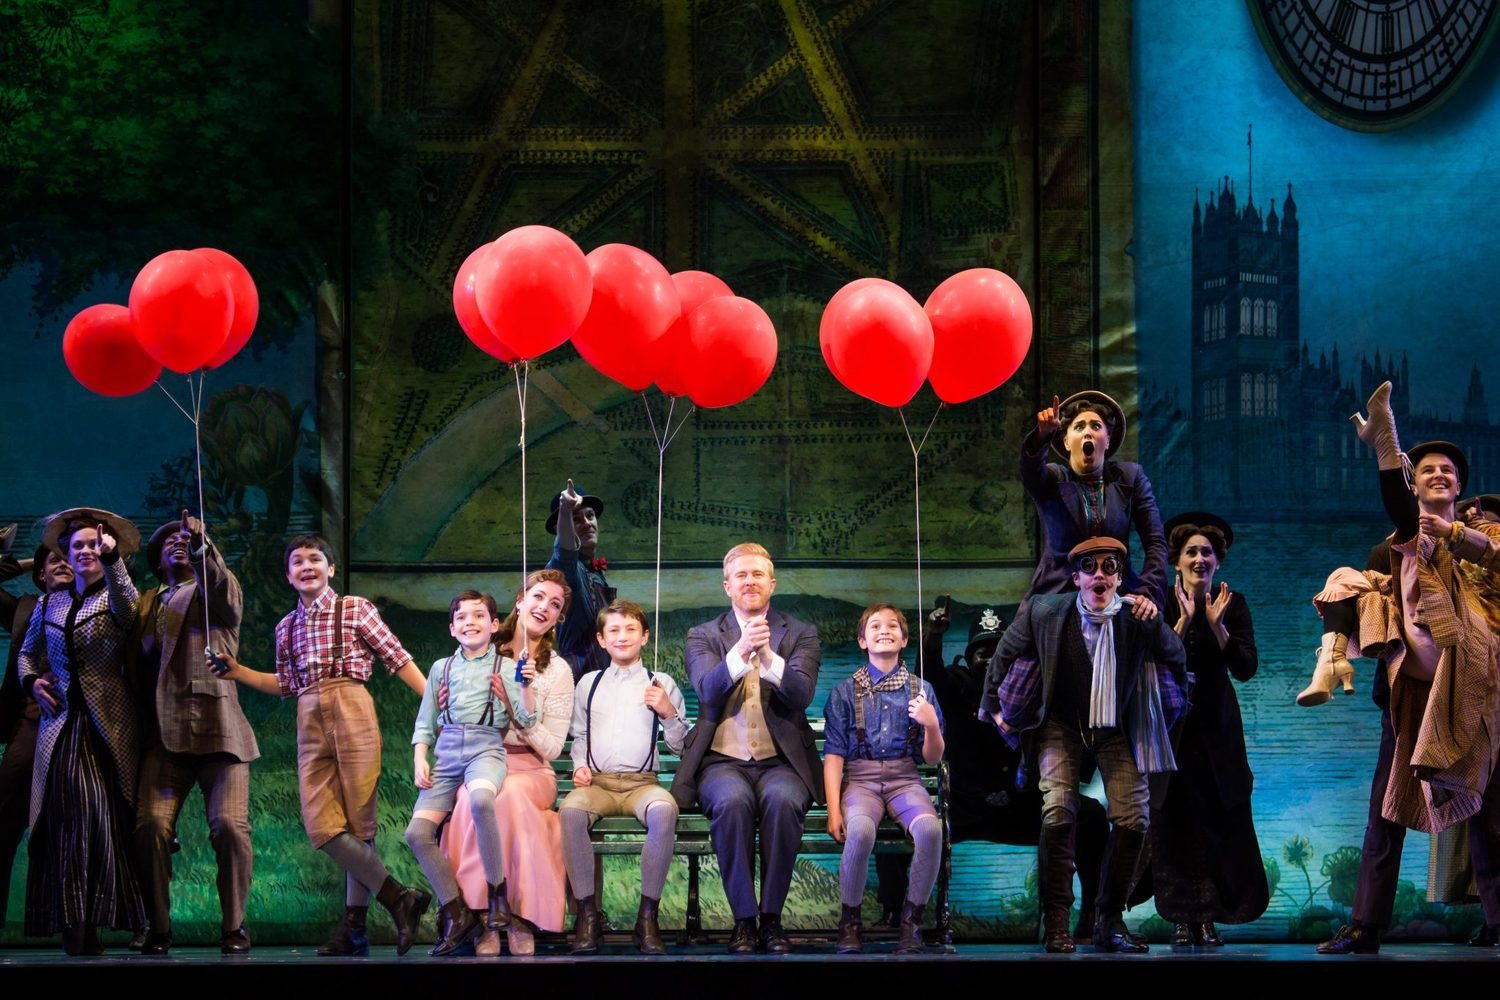 Regional Roundup: Top New Features This Week Around Our BroadwayWorld 4/12 - LOVE NEVER DIES, FINDING NEVERLAND, FUN HOME, and More!